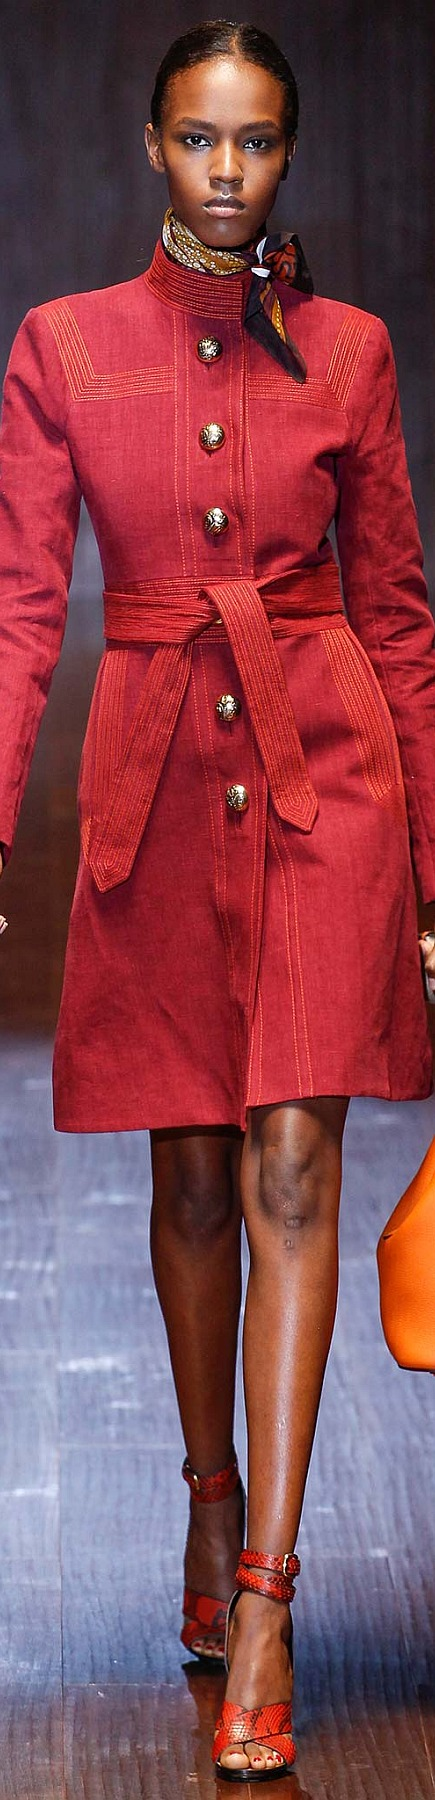 Gucci Collection Spring 2015 | The House of Beccaria~ red coat women fashion outfit clothing style apparel @roressclothes closet ideas